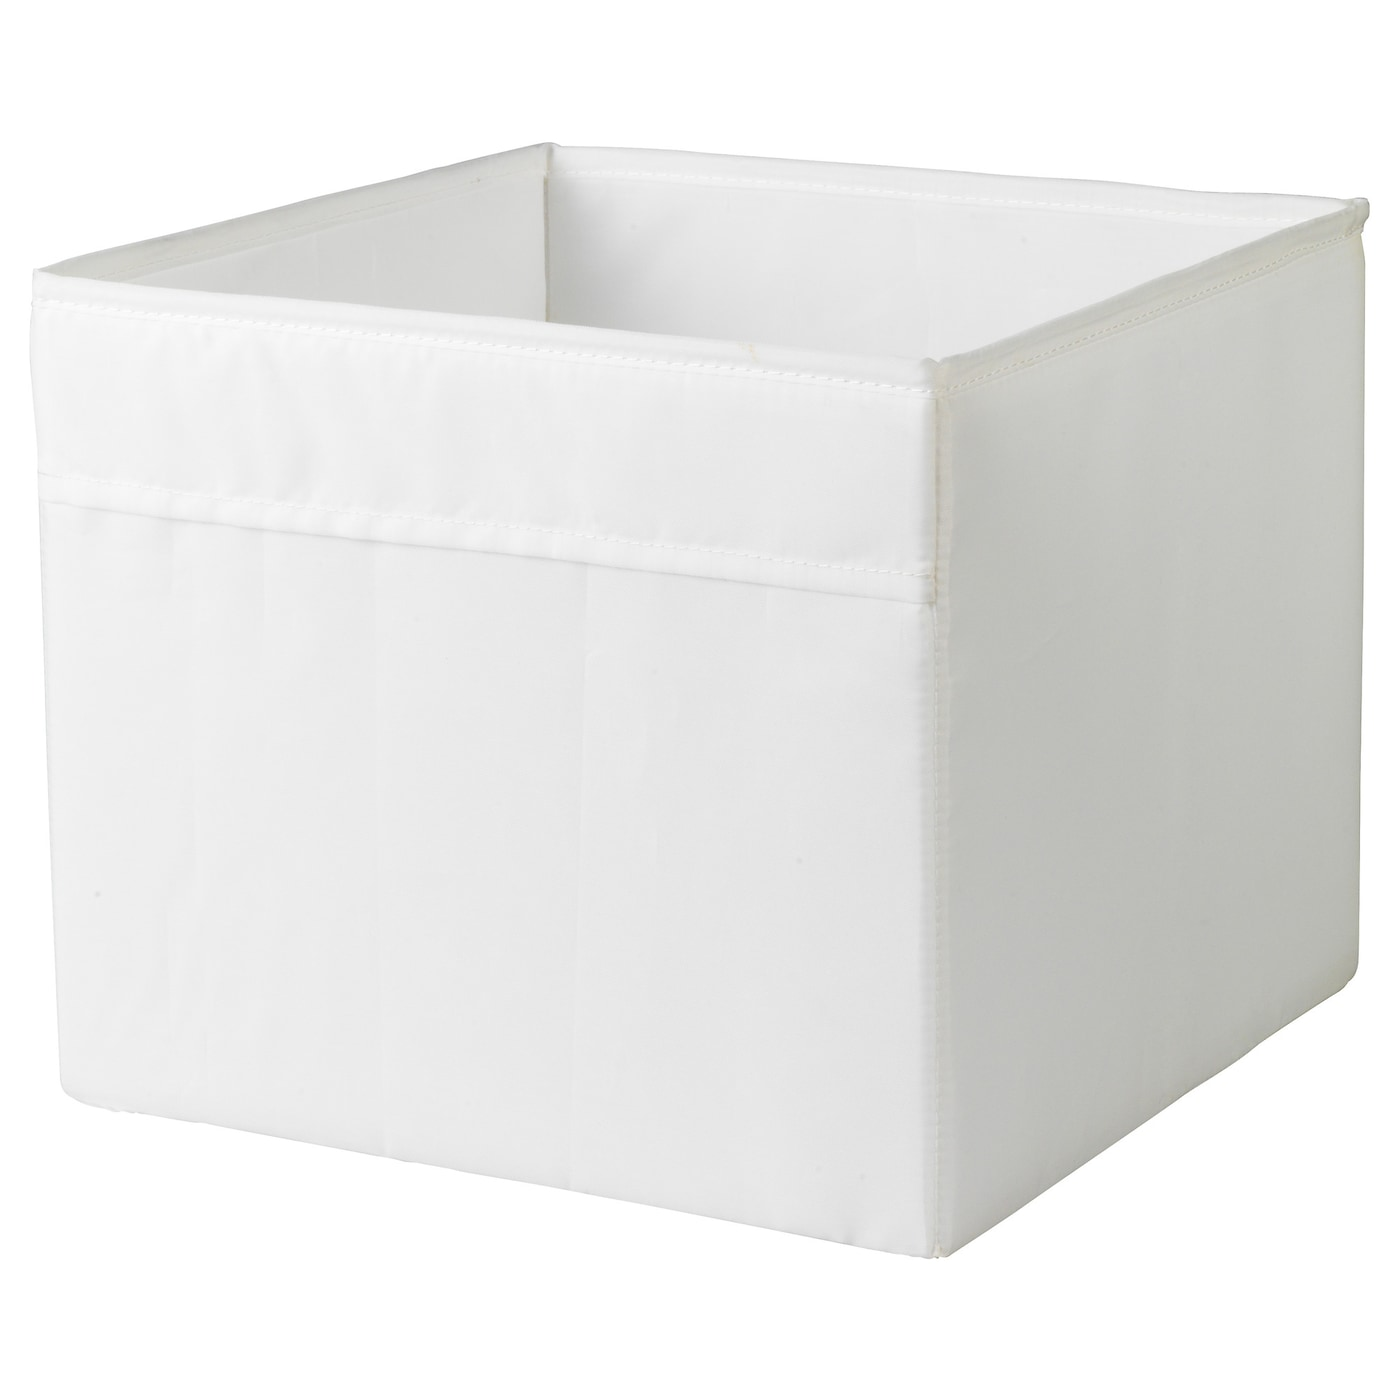 IKEA GOPÅN box Easy to pull out as the box has handles on both sides.